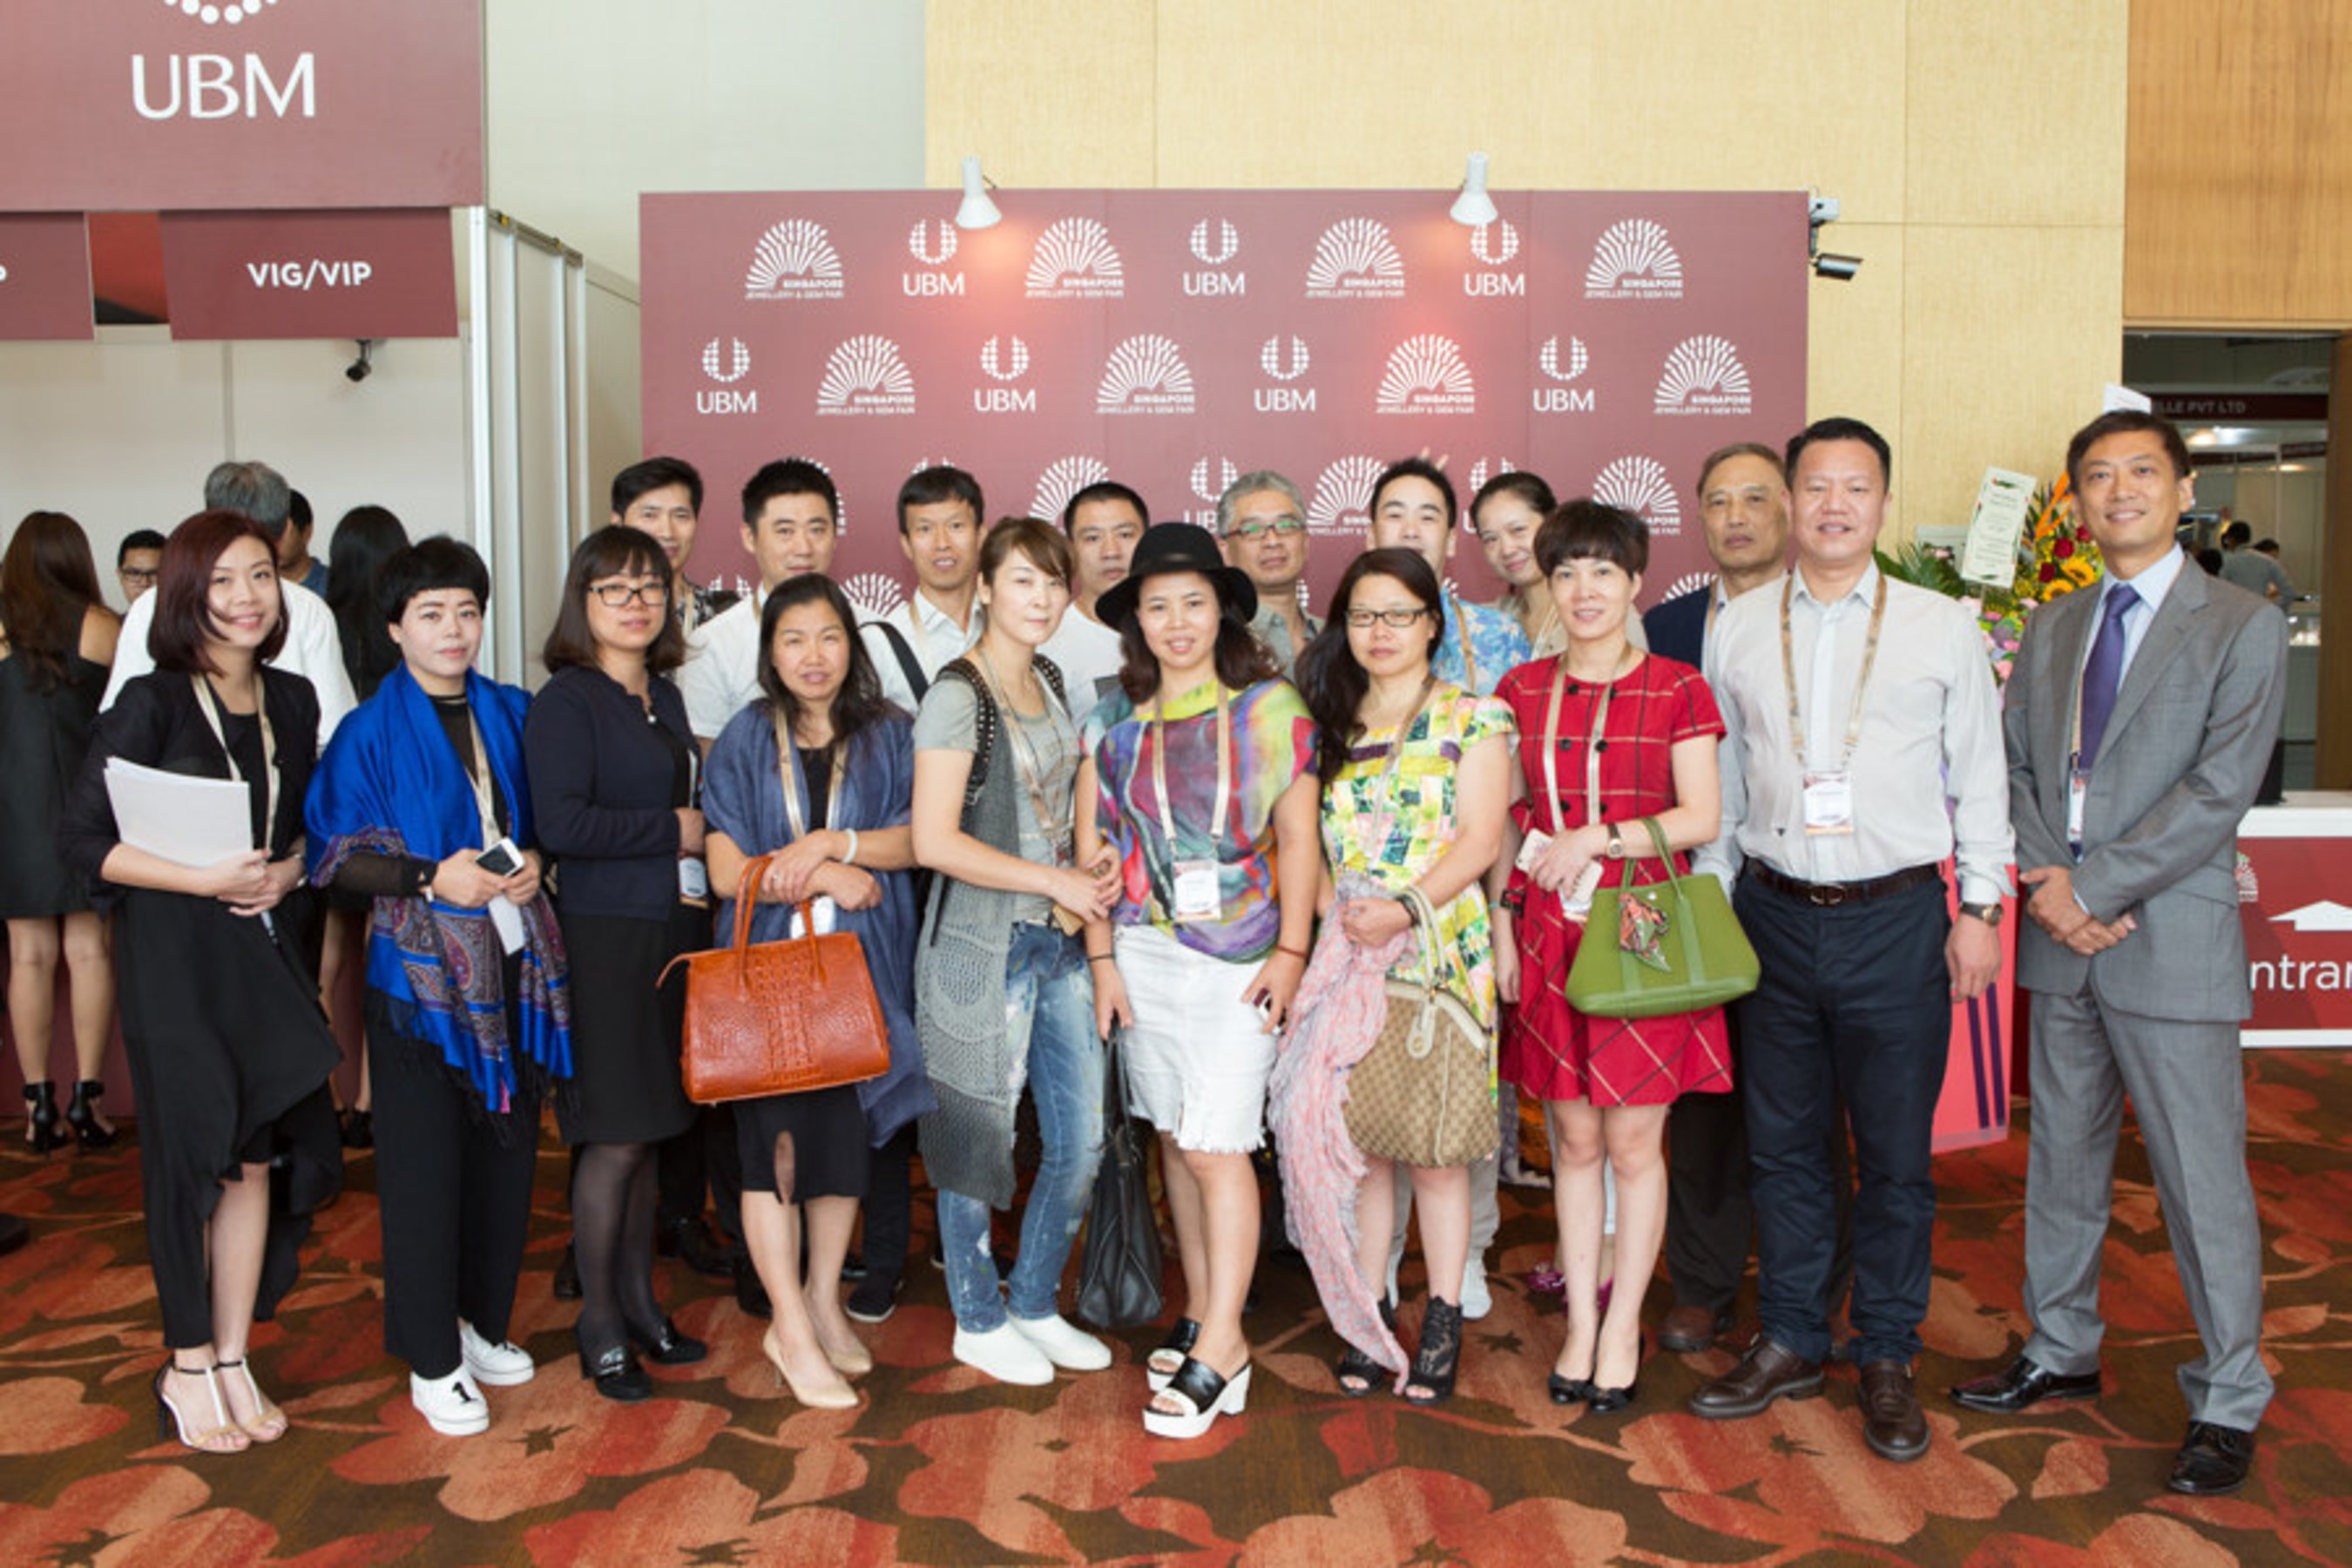 Welcomed notable trade buyers from Australia, China, Indonesia, Malaysia, Singapore and the world over.